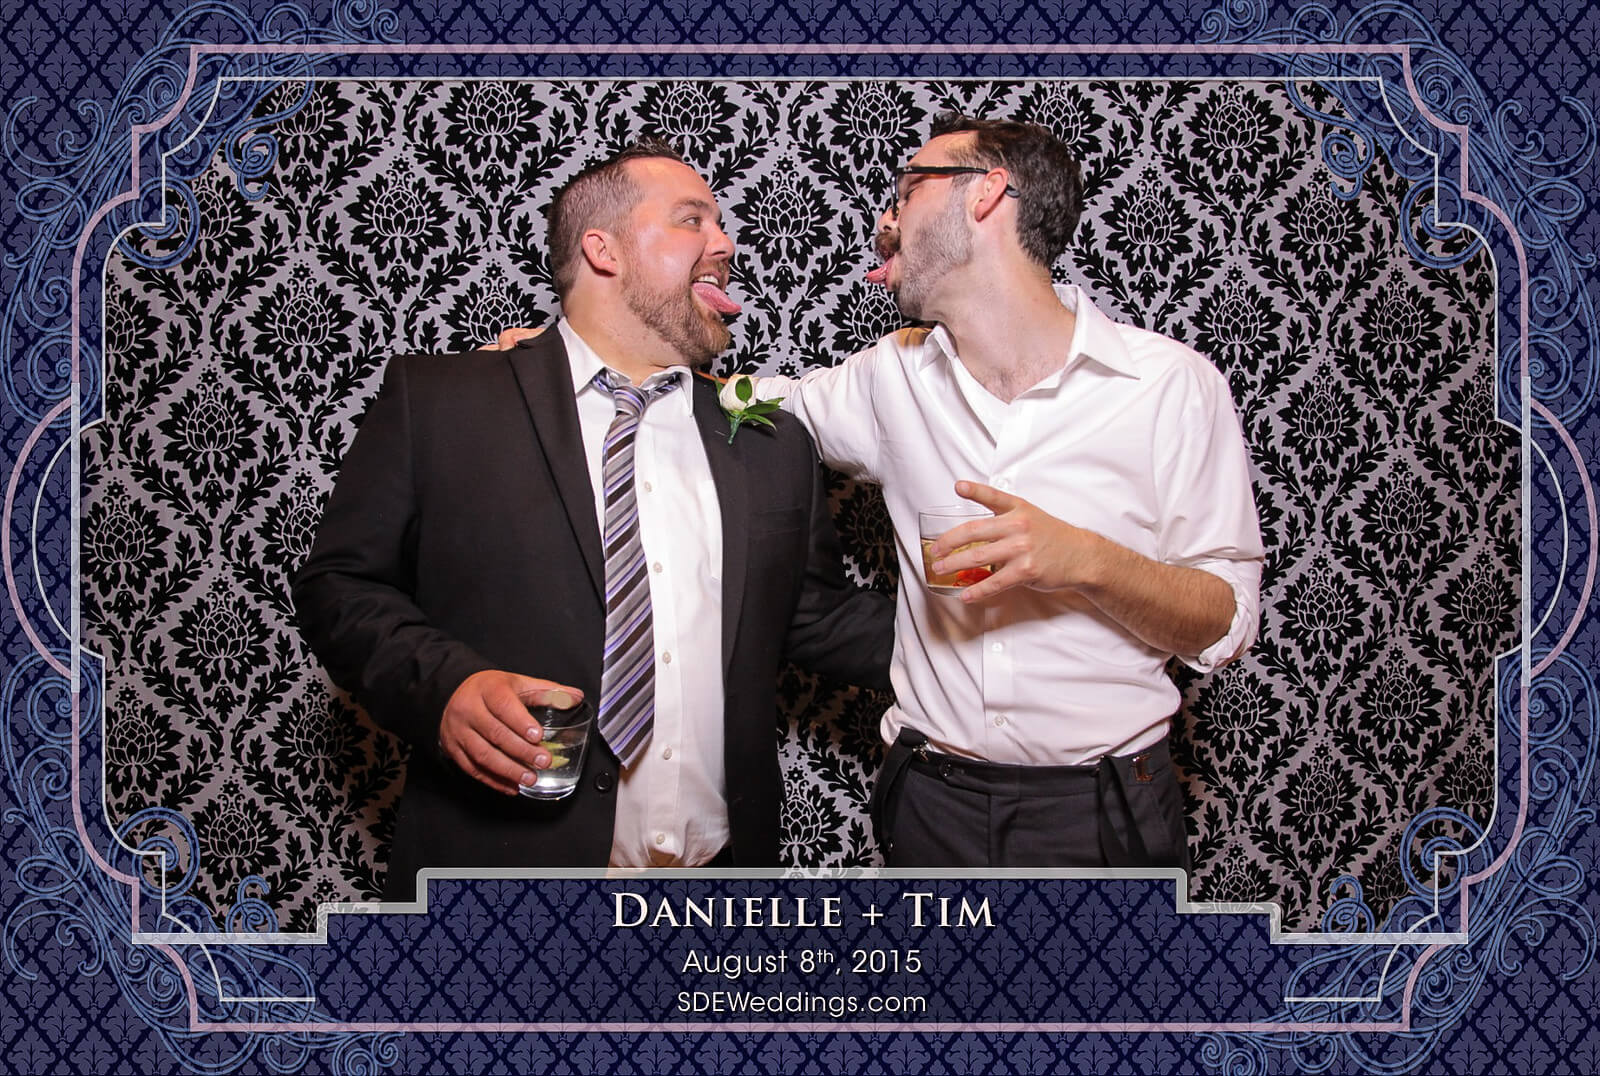 Toronto Old Mill Inn Wedding Photo Booth Rental 6